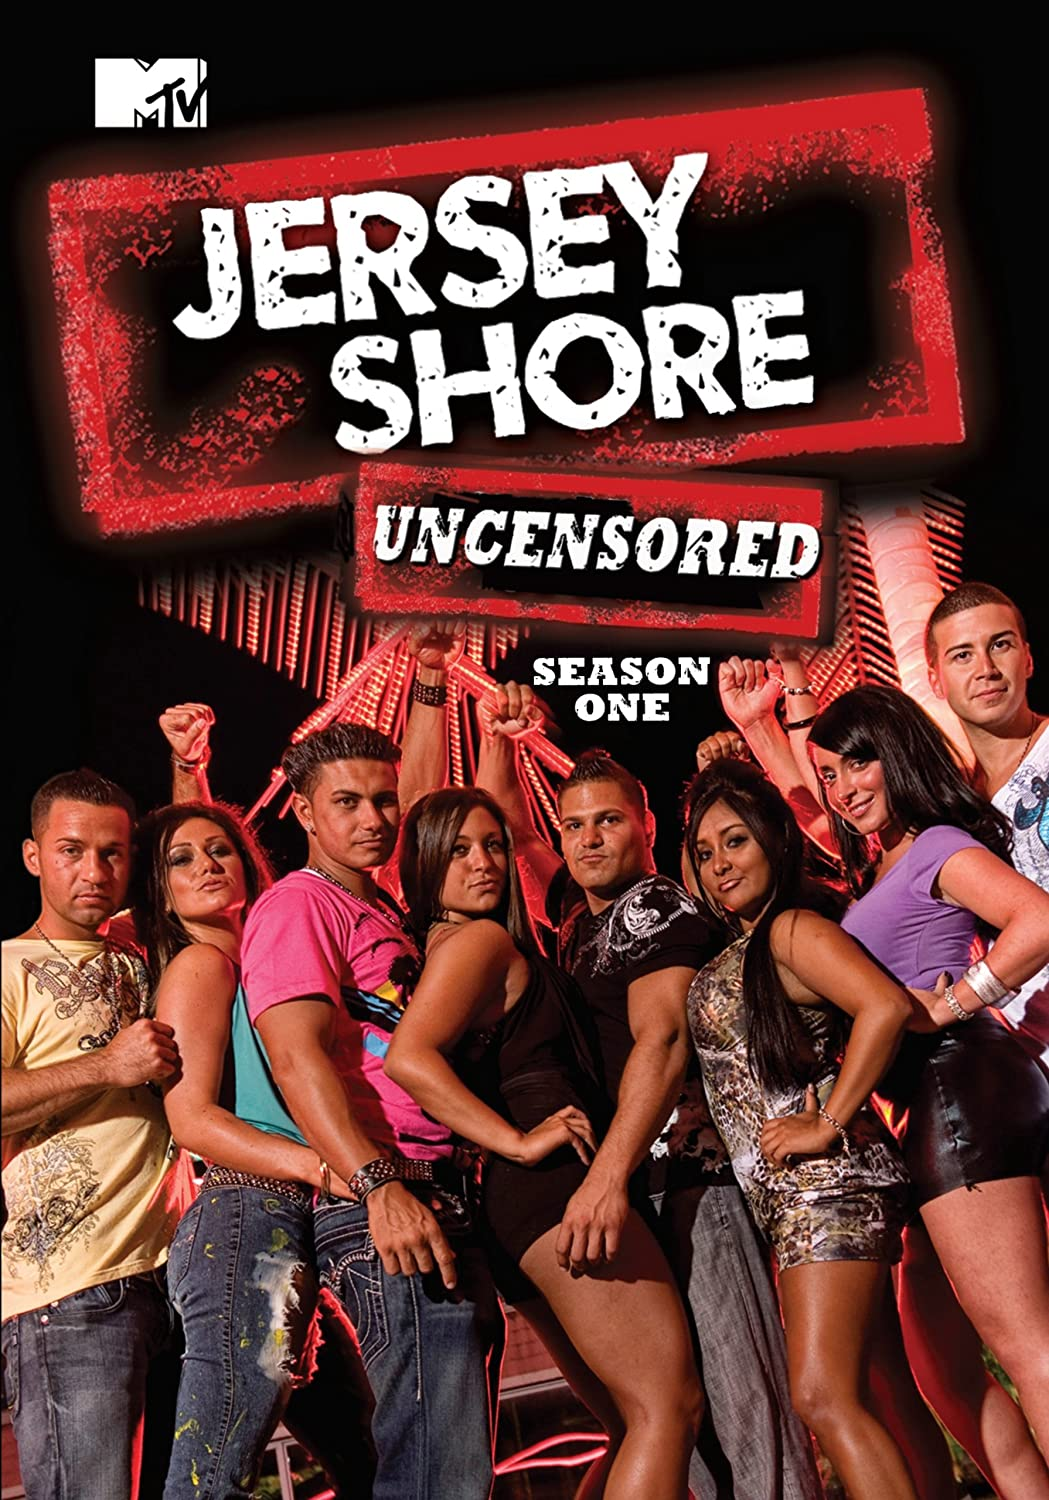 Season Online Shore Jersey 4 Free fact, there